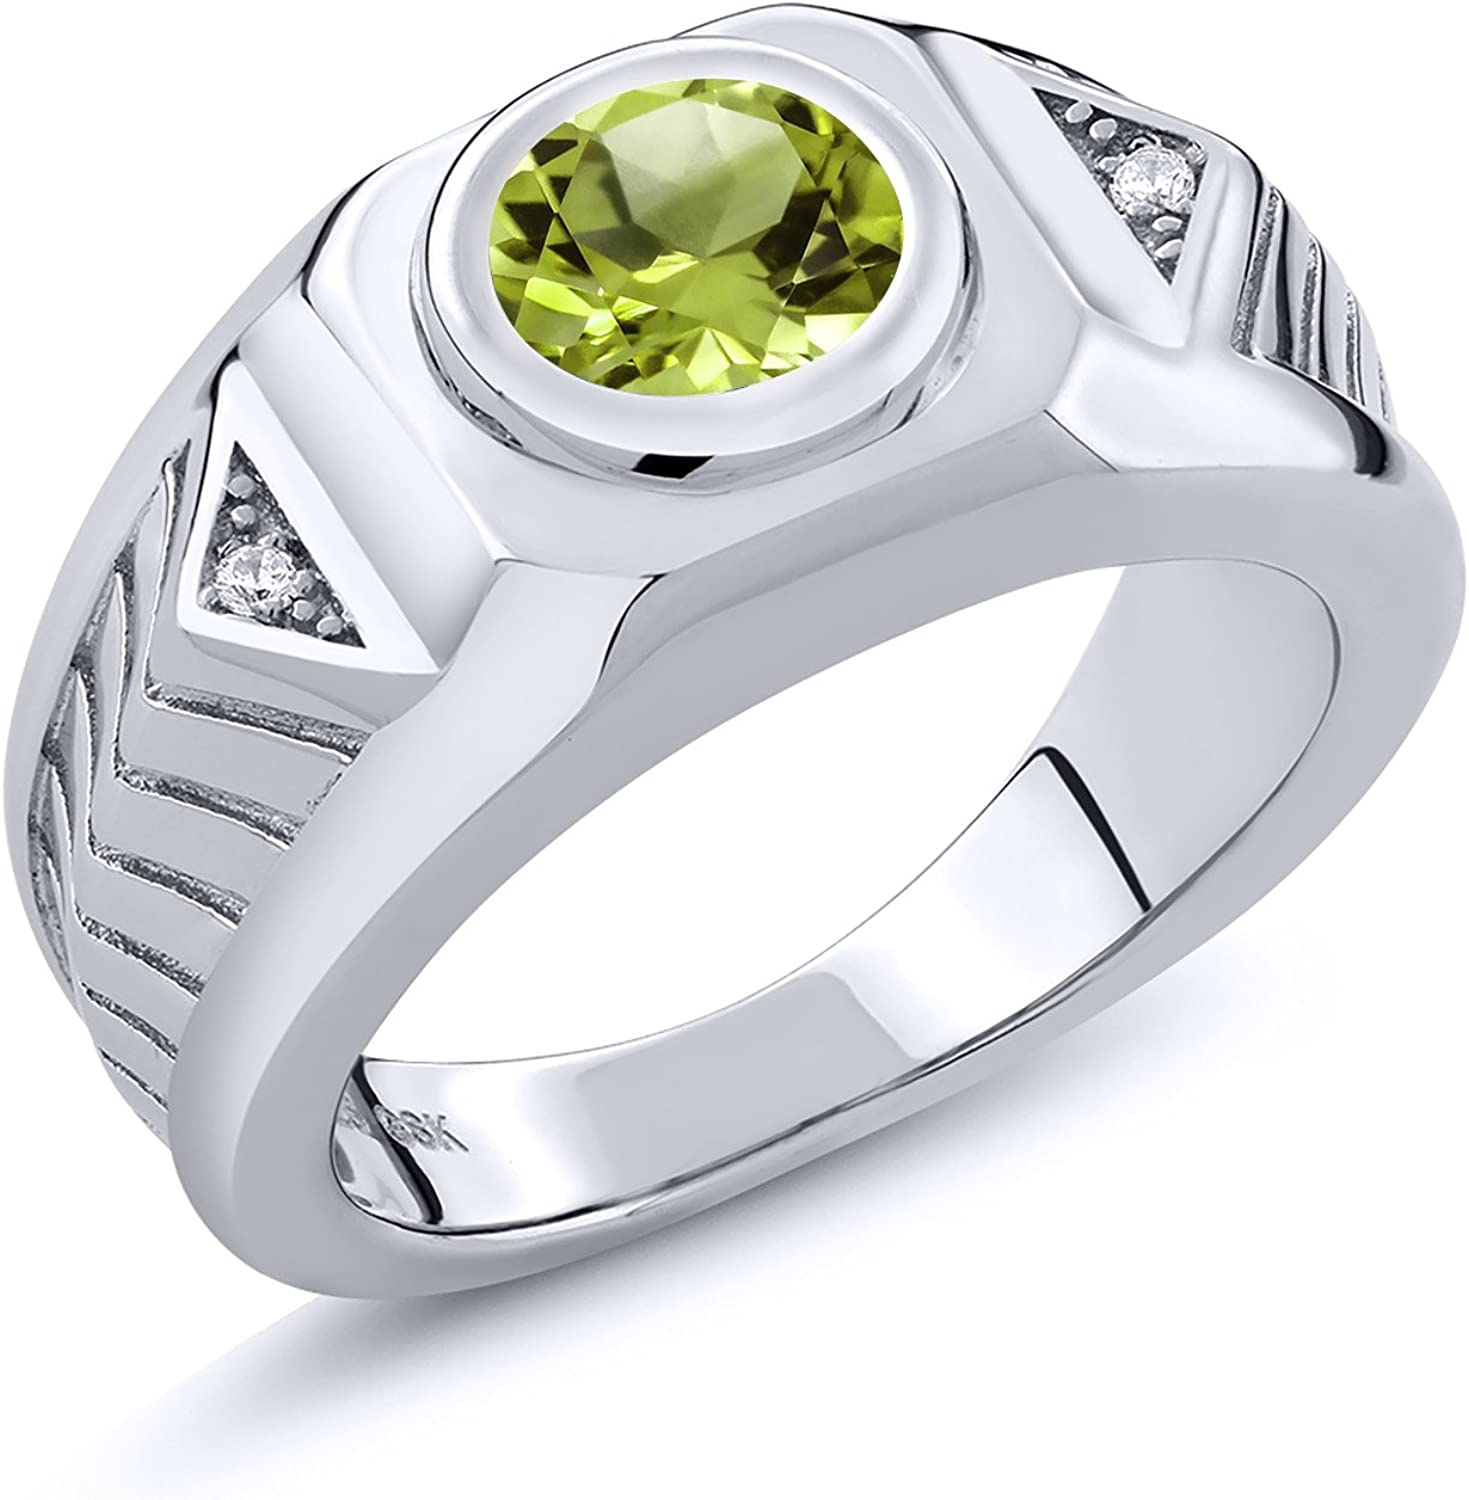 Gem Stone King 2.03 Ct Round Green Peridot 925 Sterling Silver Men's Ring